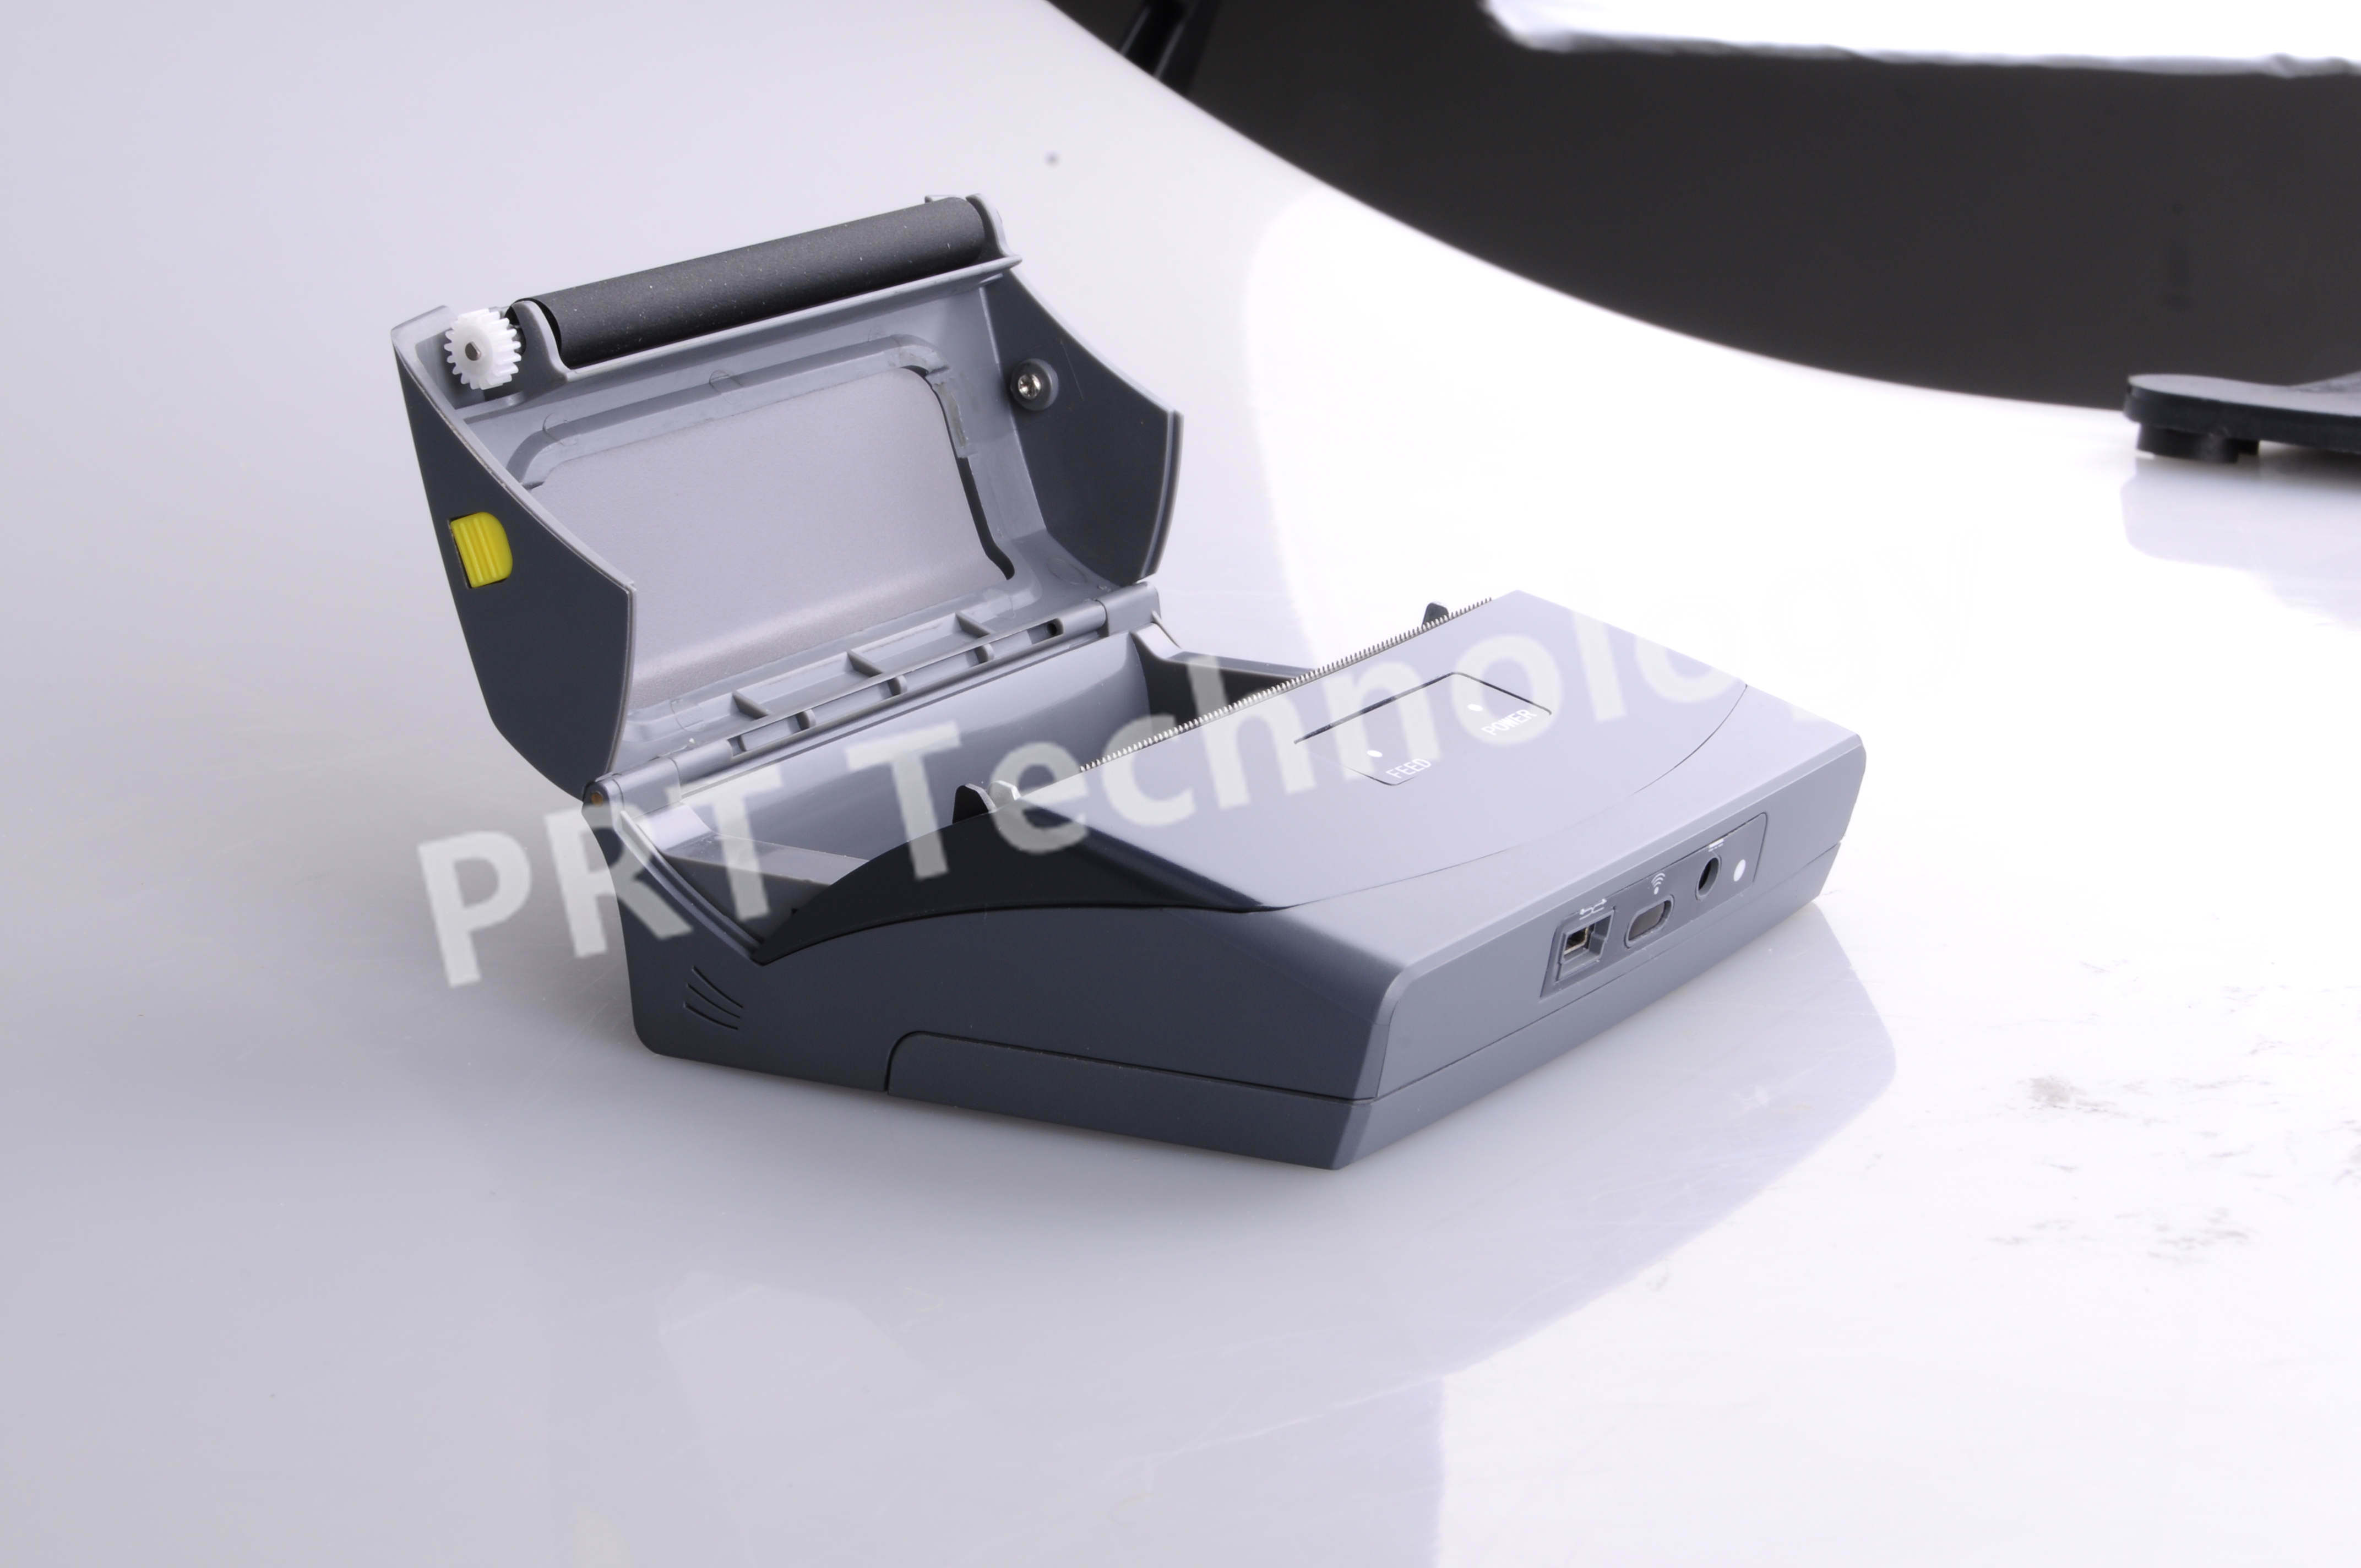 3-Inch Mobile POS Receipt Printer Mps3